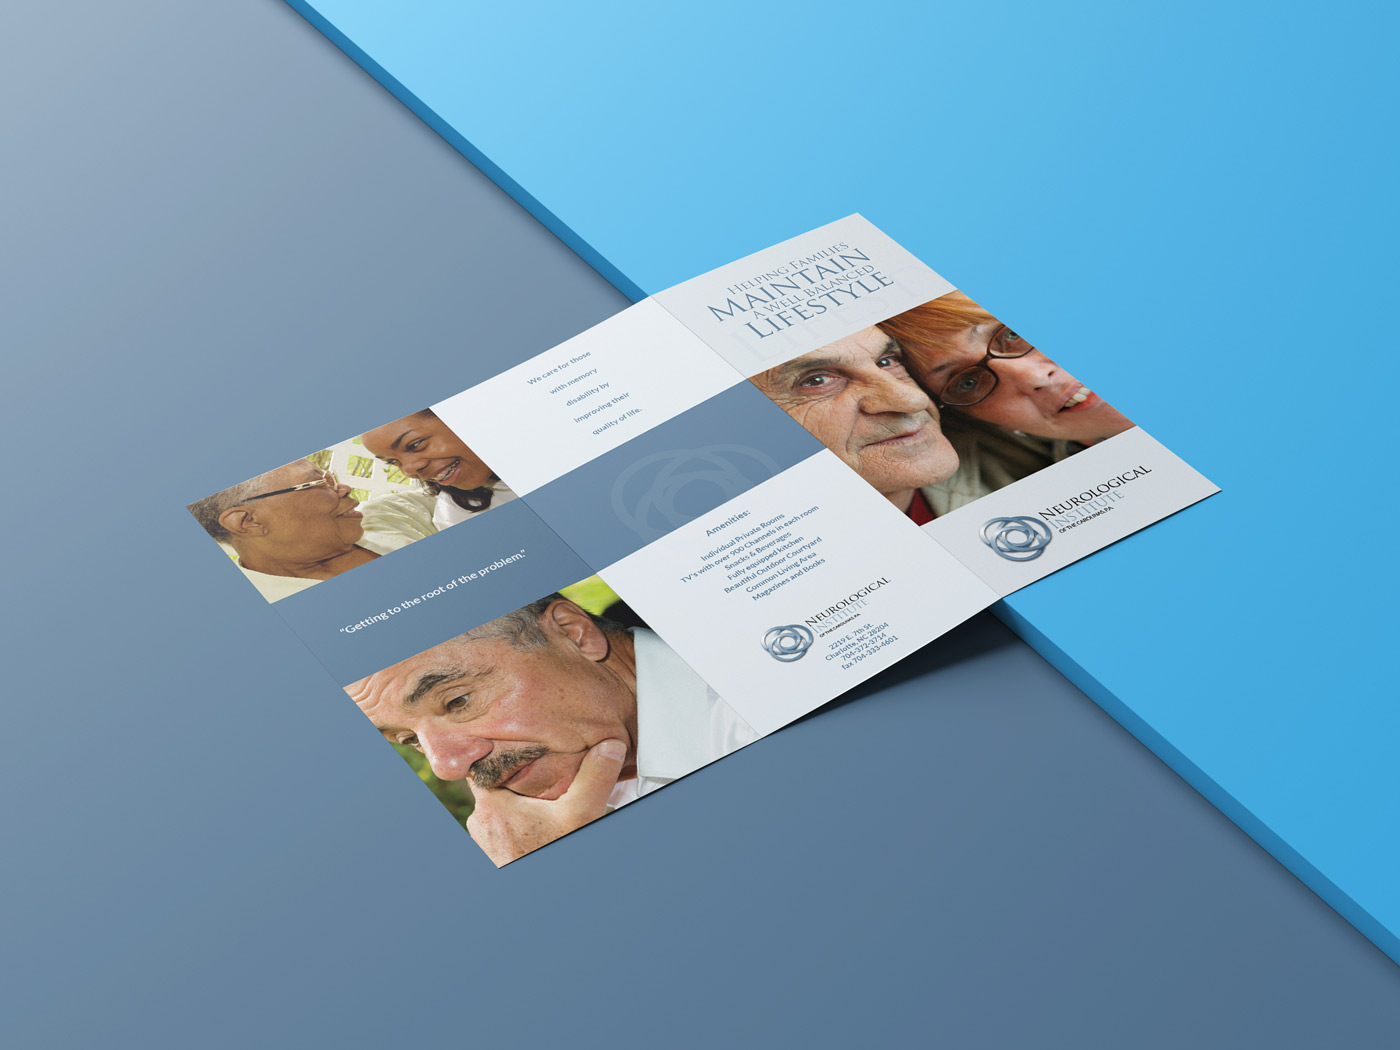 Neurological Institute Brochure Design